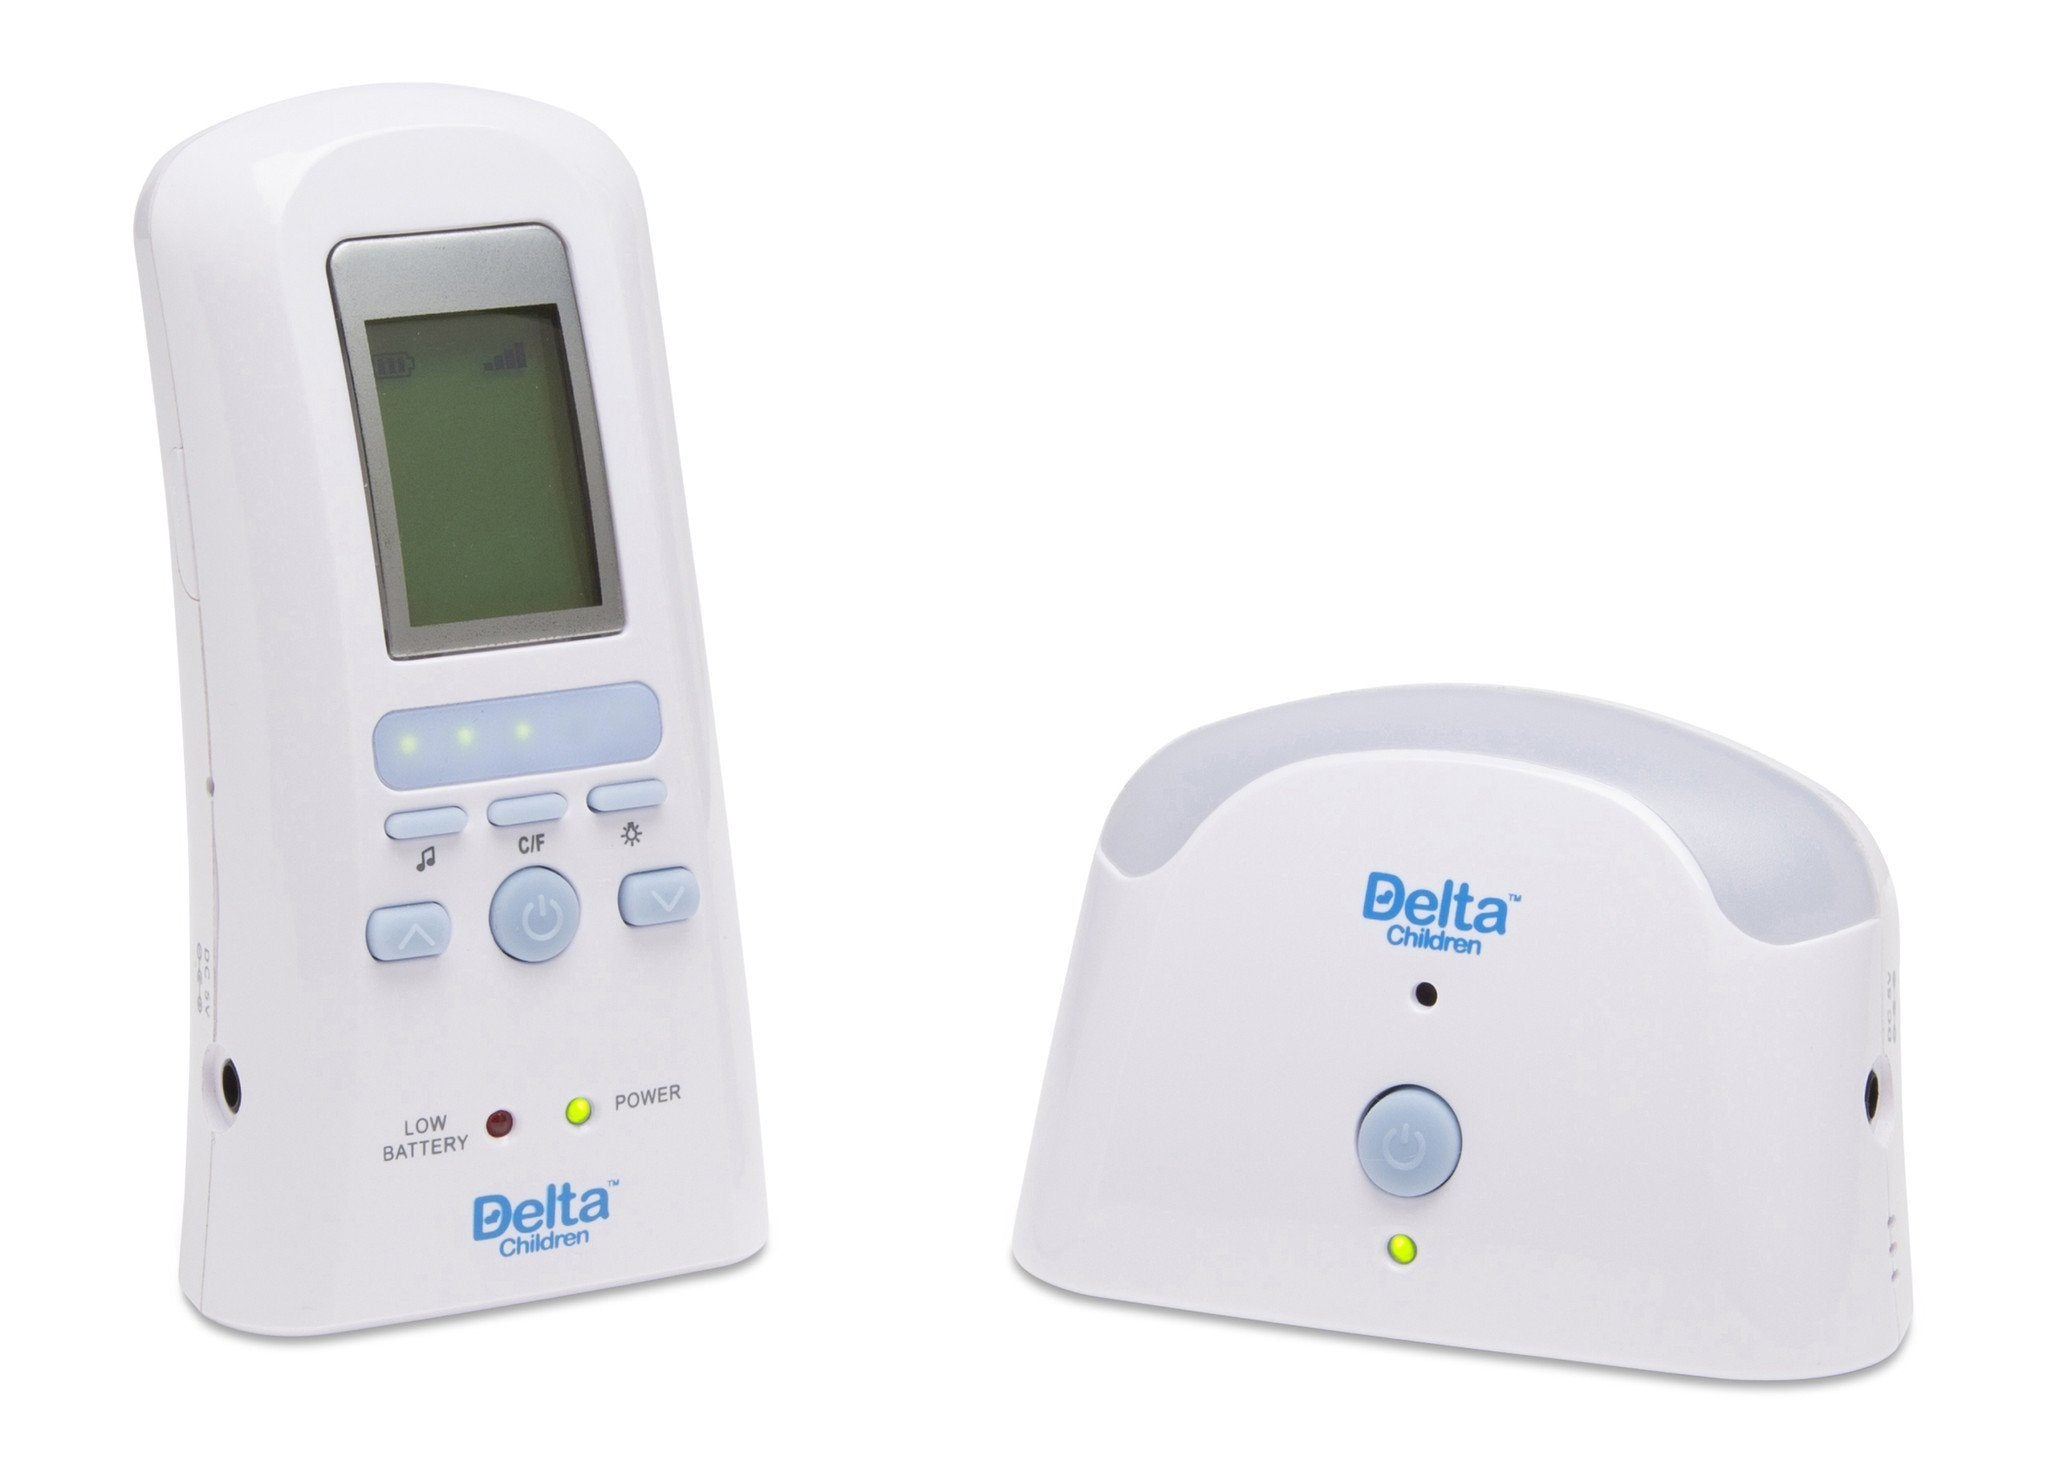 Delta Children White (114) Safe-n-Clear Digital Audio Monitor with Temperature Sensor, Side View a1a